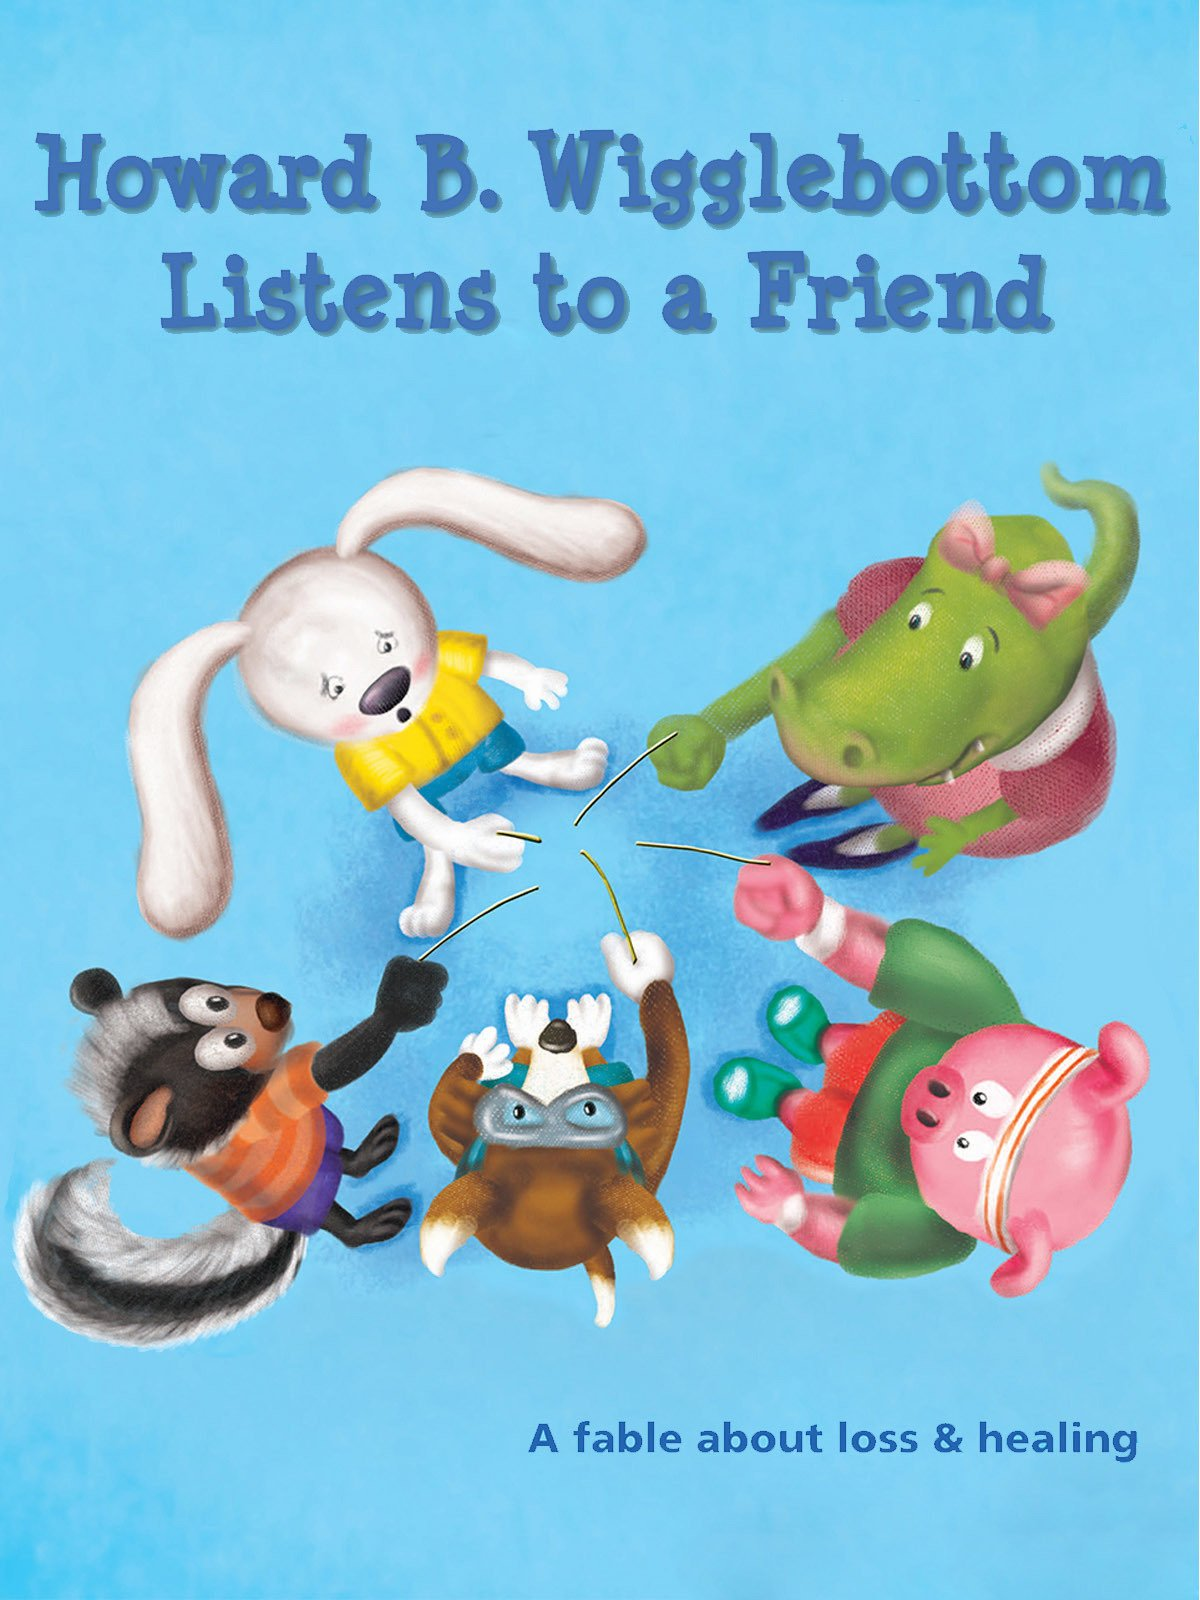 Howard B. Wigglebottom Listens to a Friend: A Fable About Loss & Healing